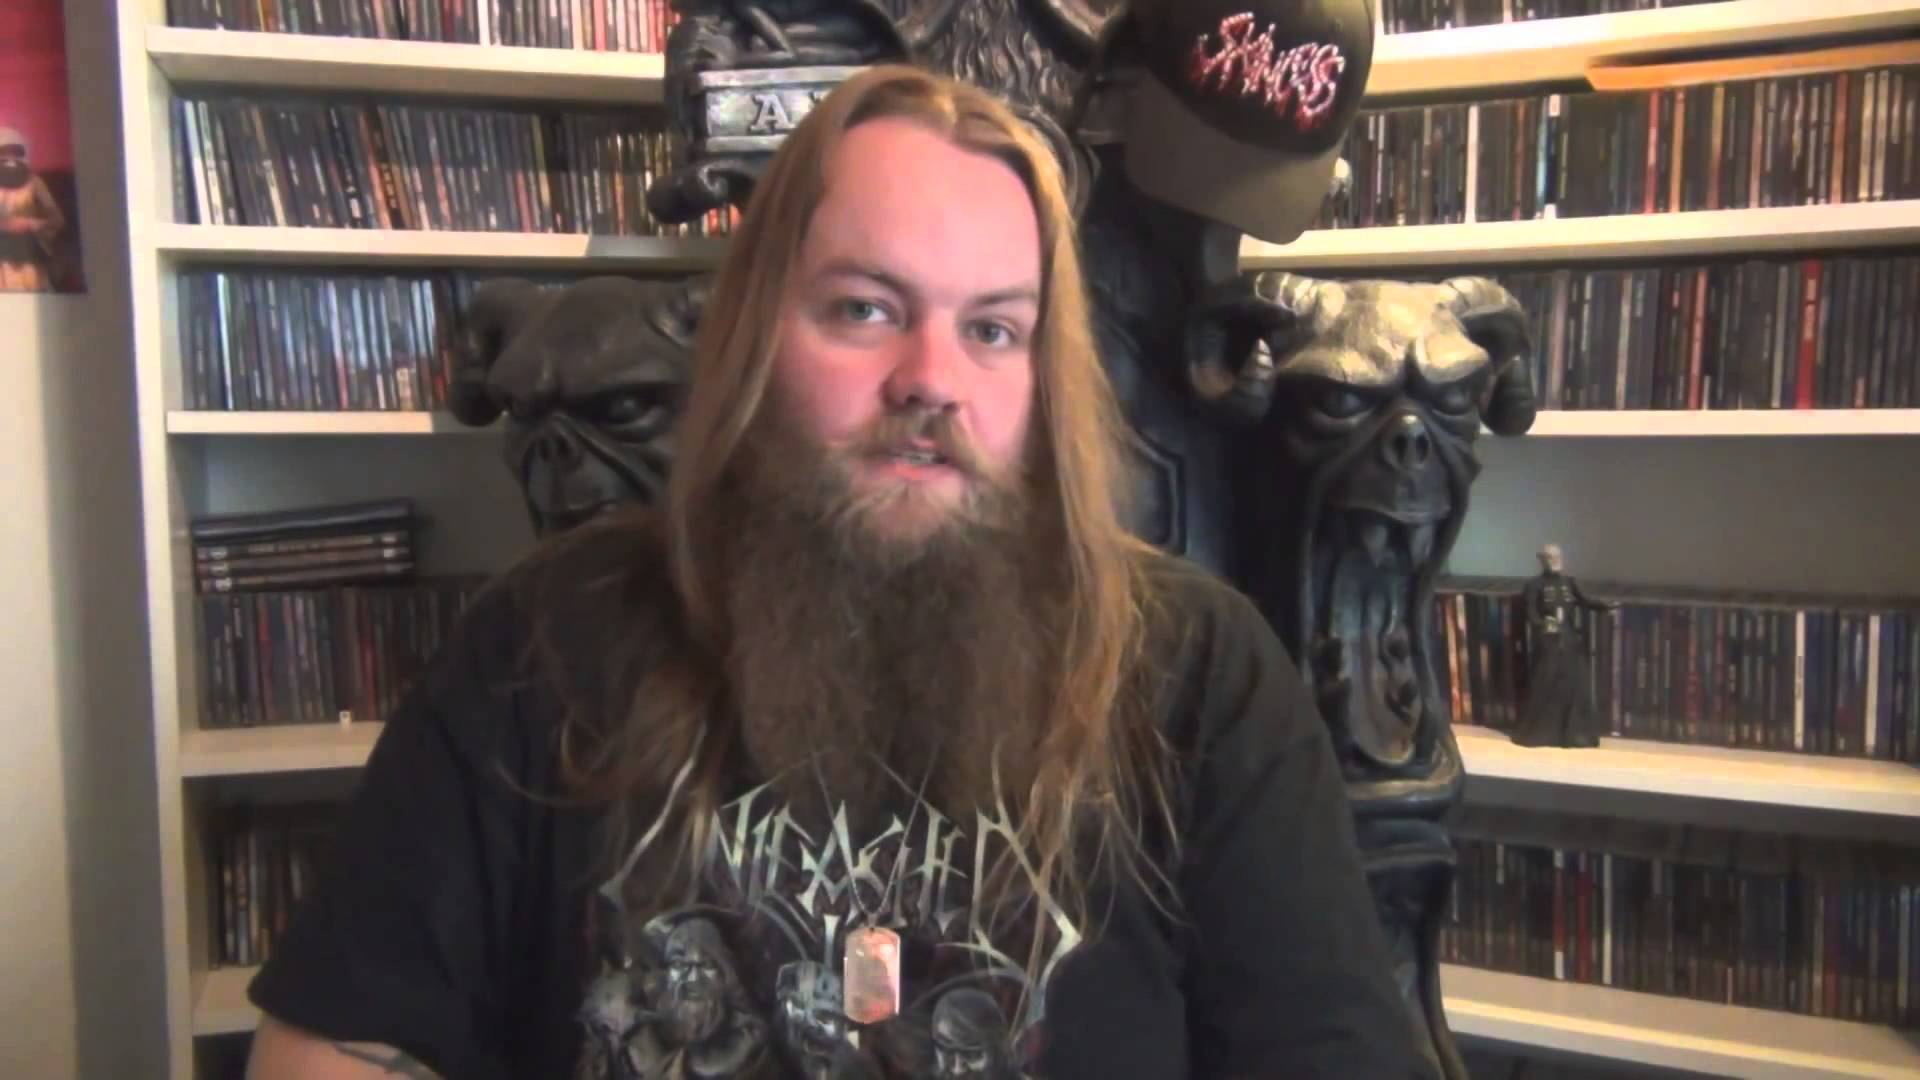 CARCASS Fan Friday InfidelAmsterdam Reviews Carcass Surgical Steel (OFFICIAL INTERVIEW)